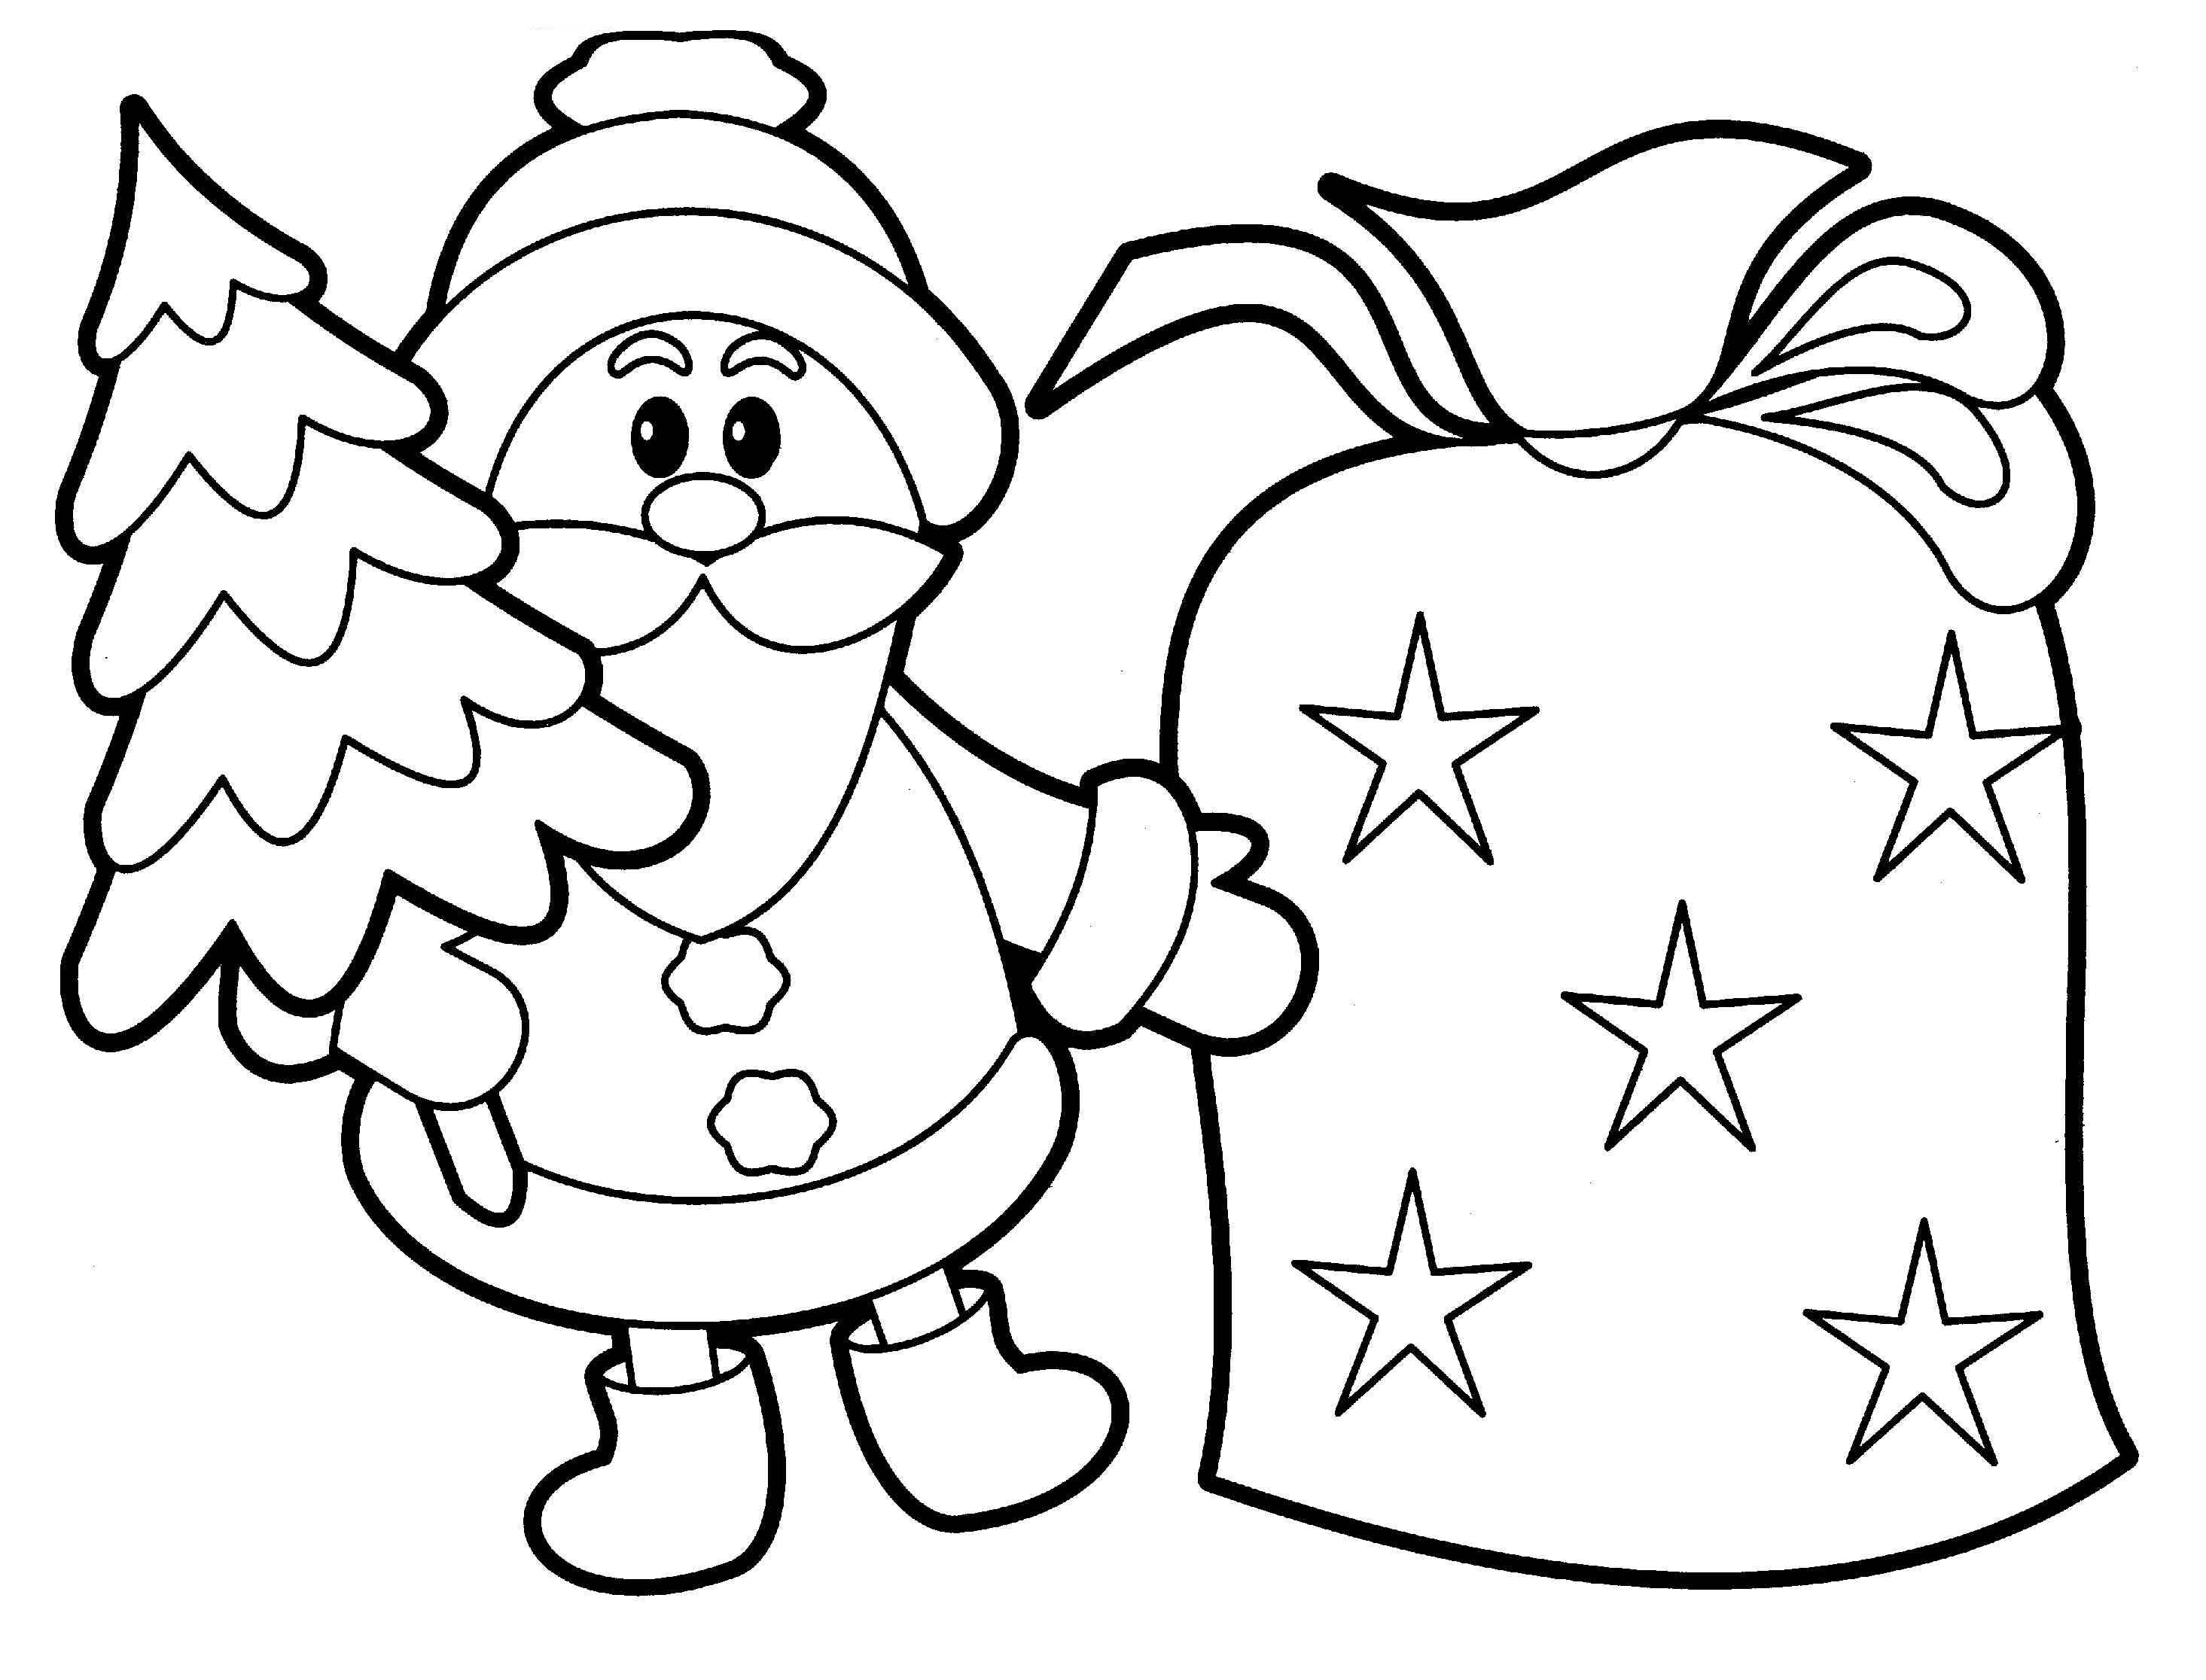 coloring christmas printables 2020 coloring pages for christmas wallpapers images printables christmas coloring